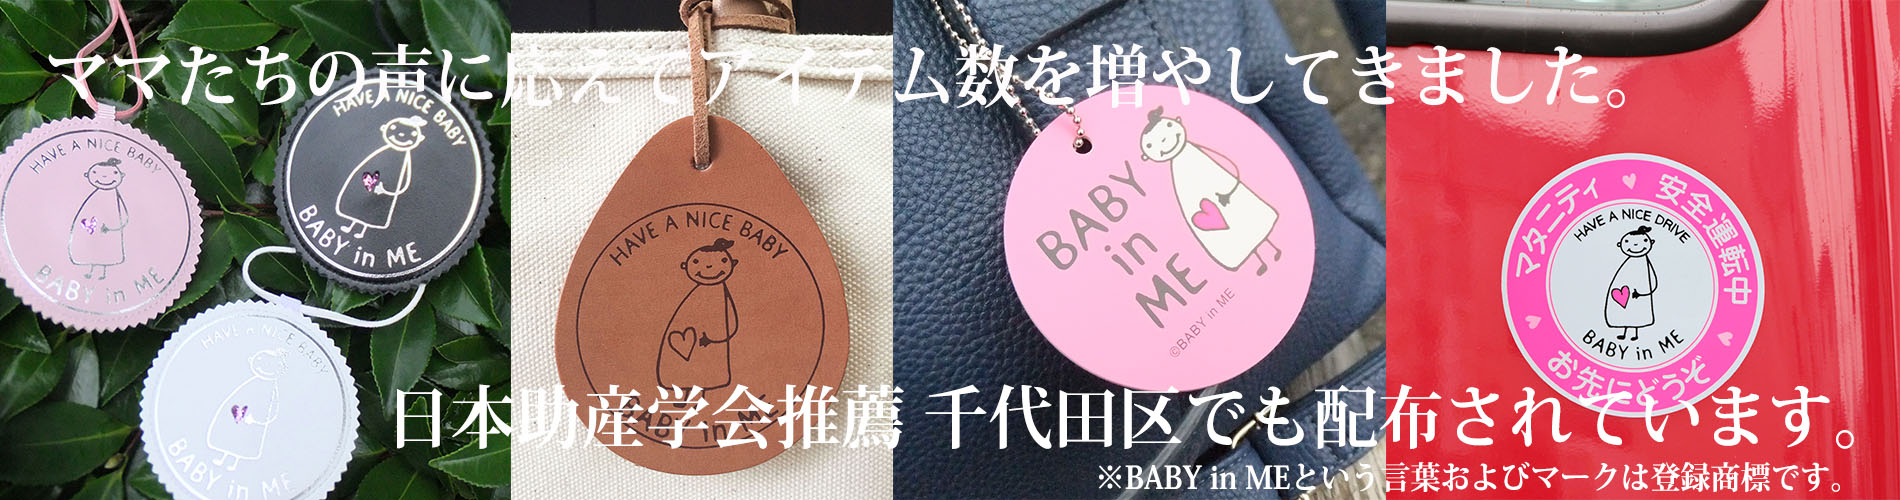 BABY in MEは、日本助産学会推薦。BABY in MEのバッグチャームは、千代田区でも配布されています。